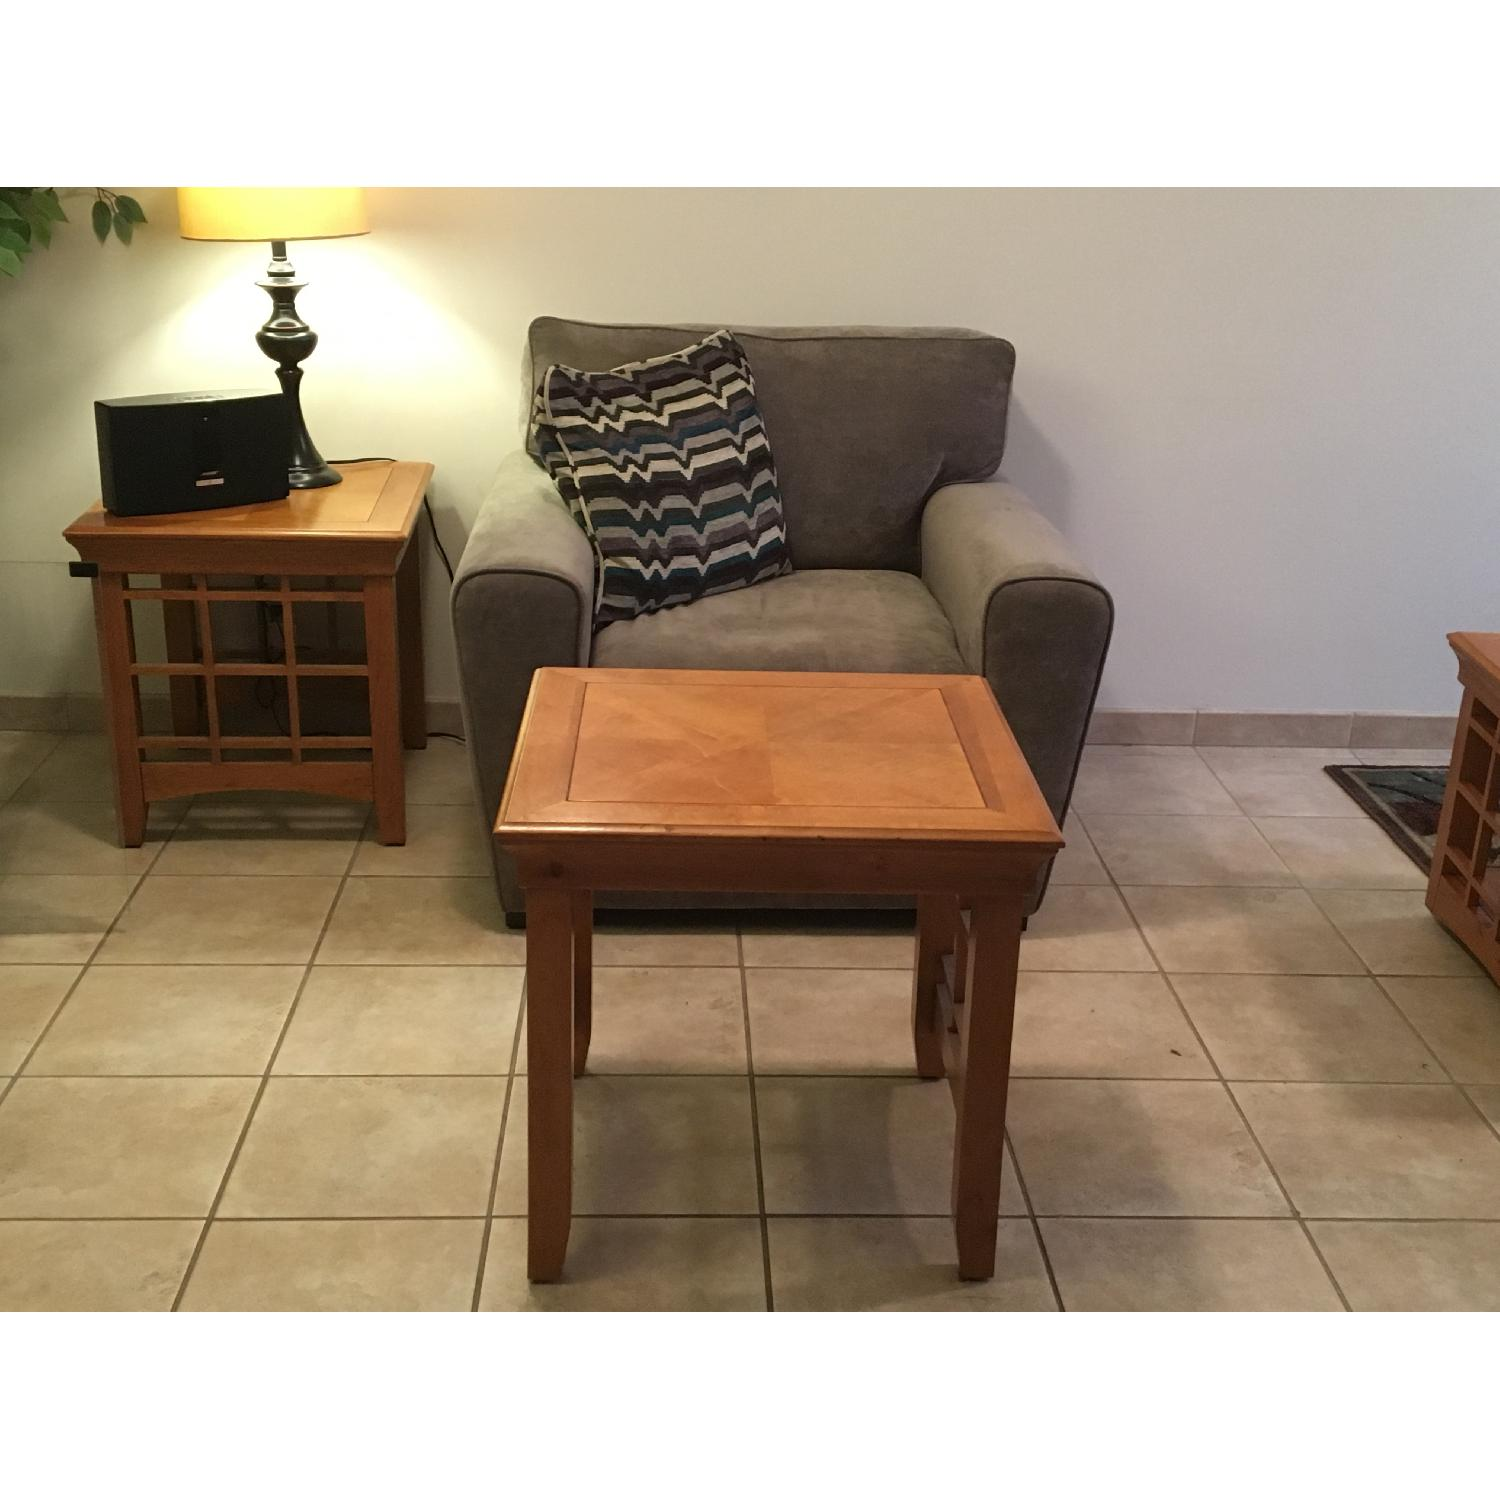 Furniture Options Wooden Coffee Table + 2 Matching End Tables - image-7